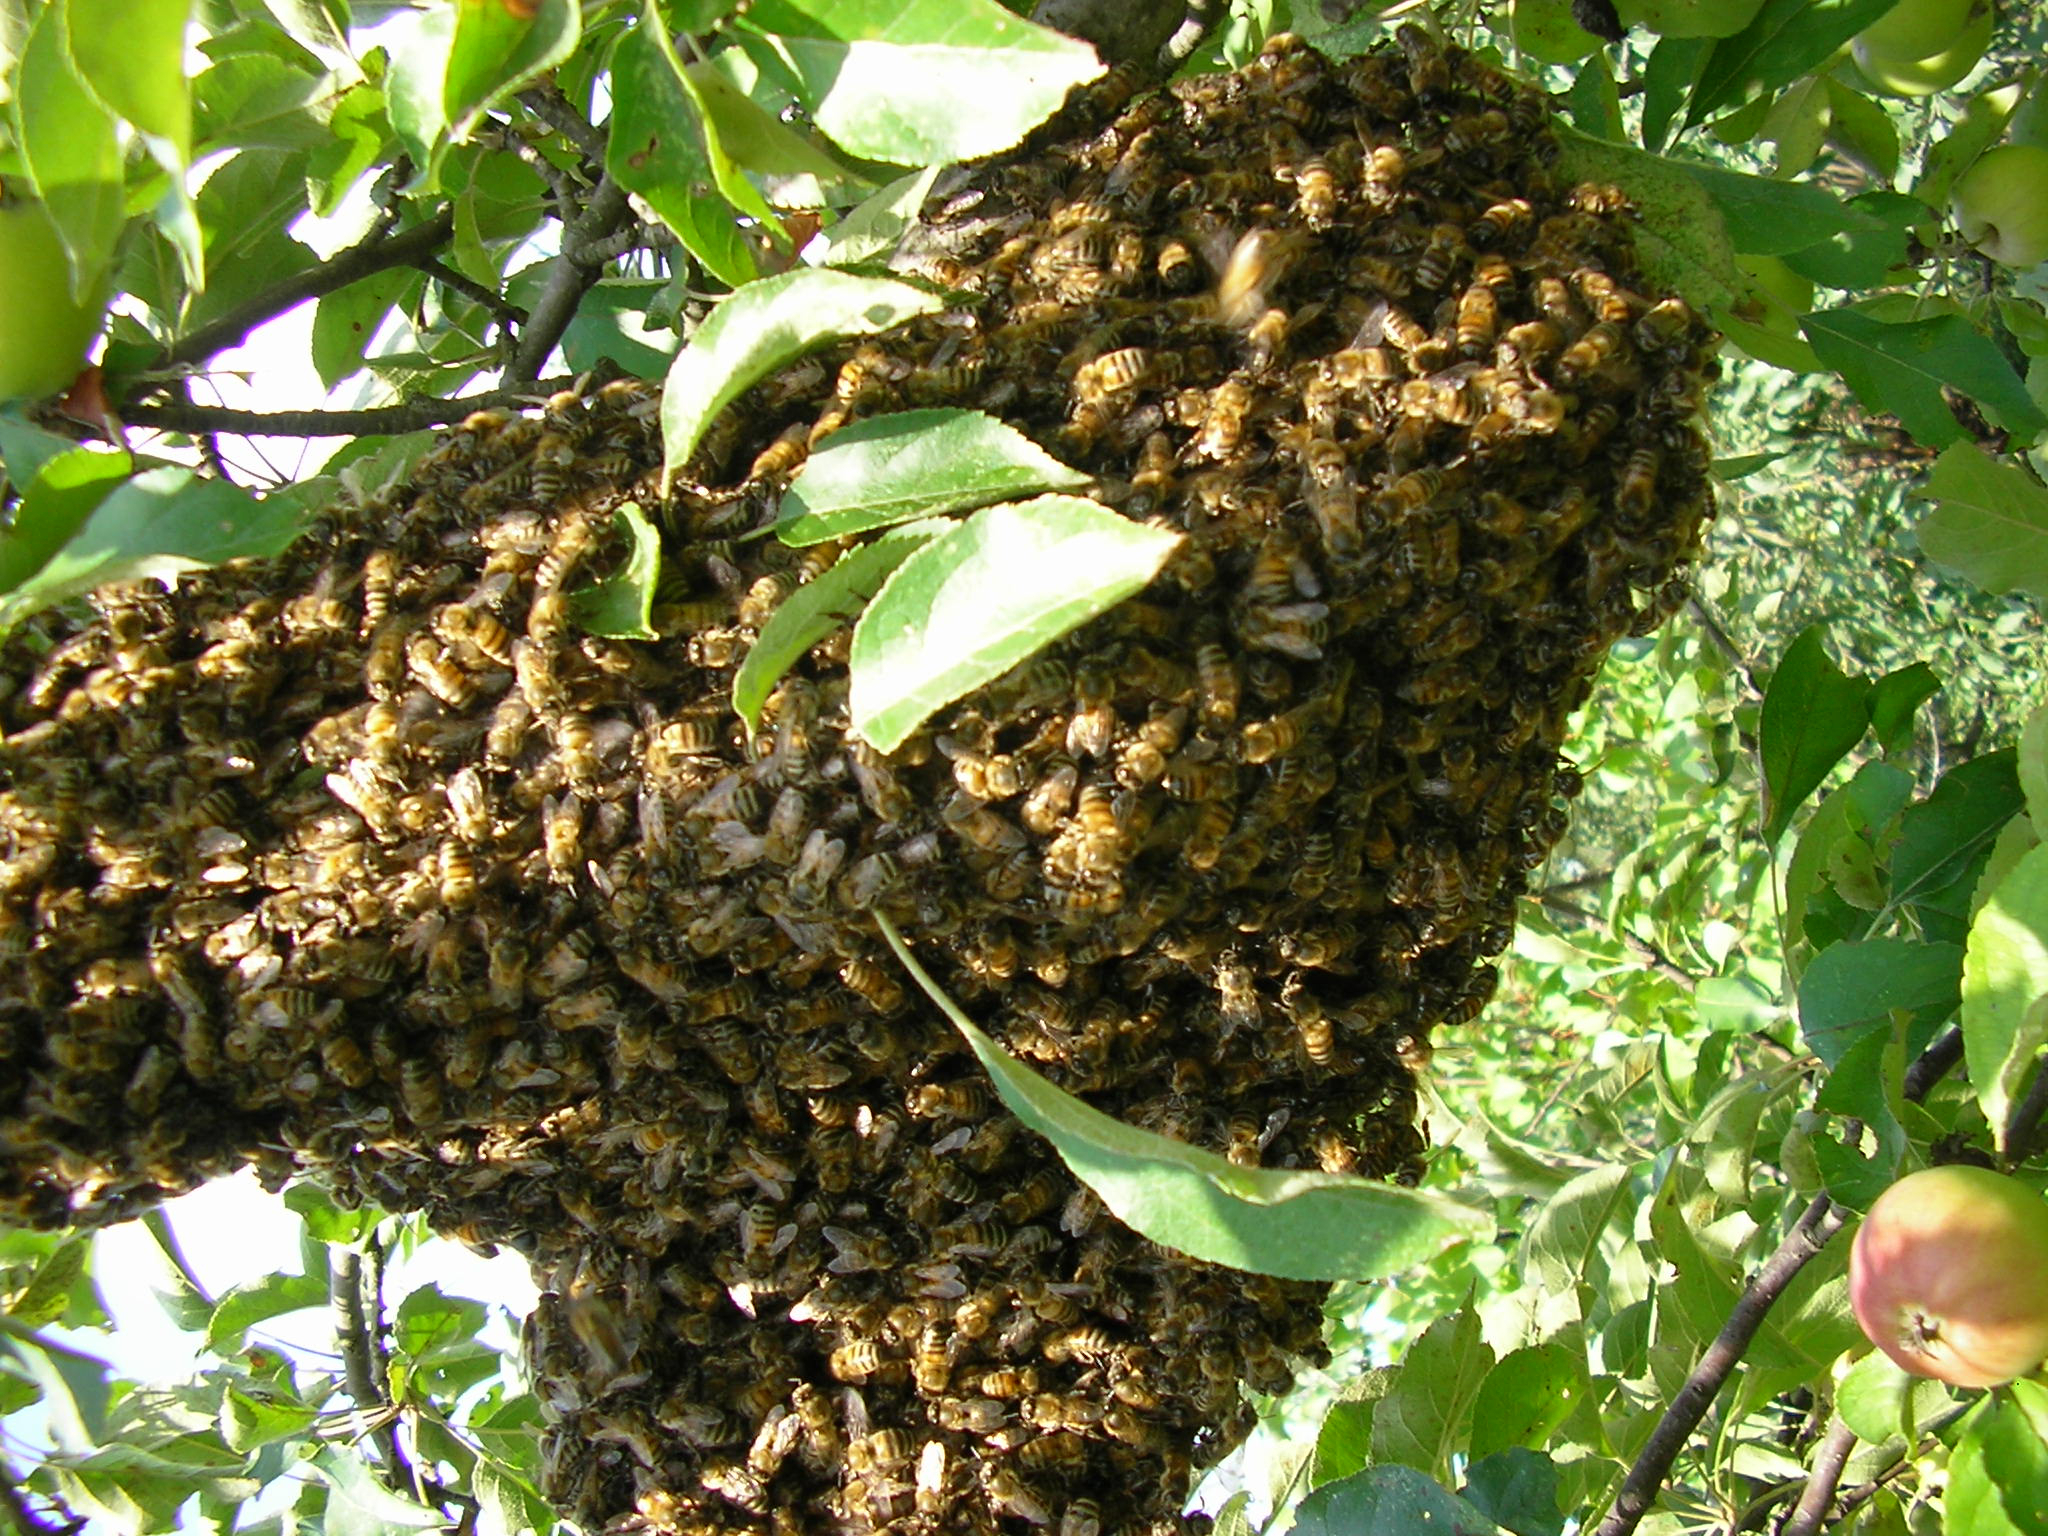 Importance of Bees